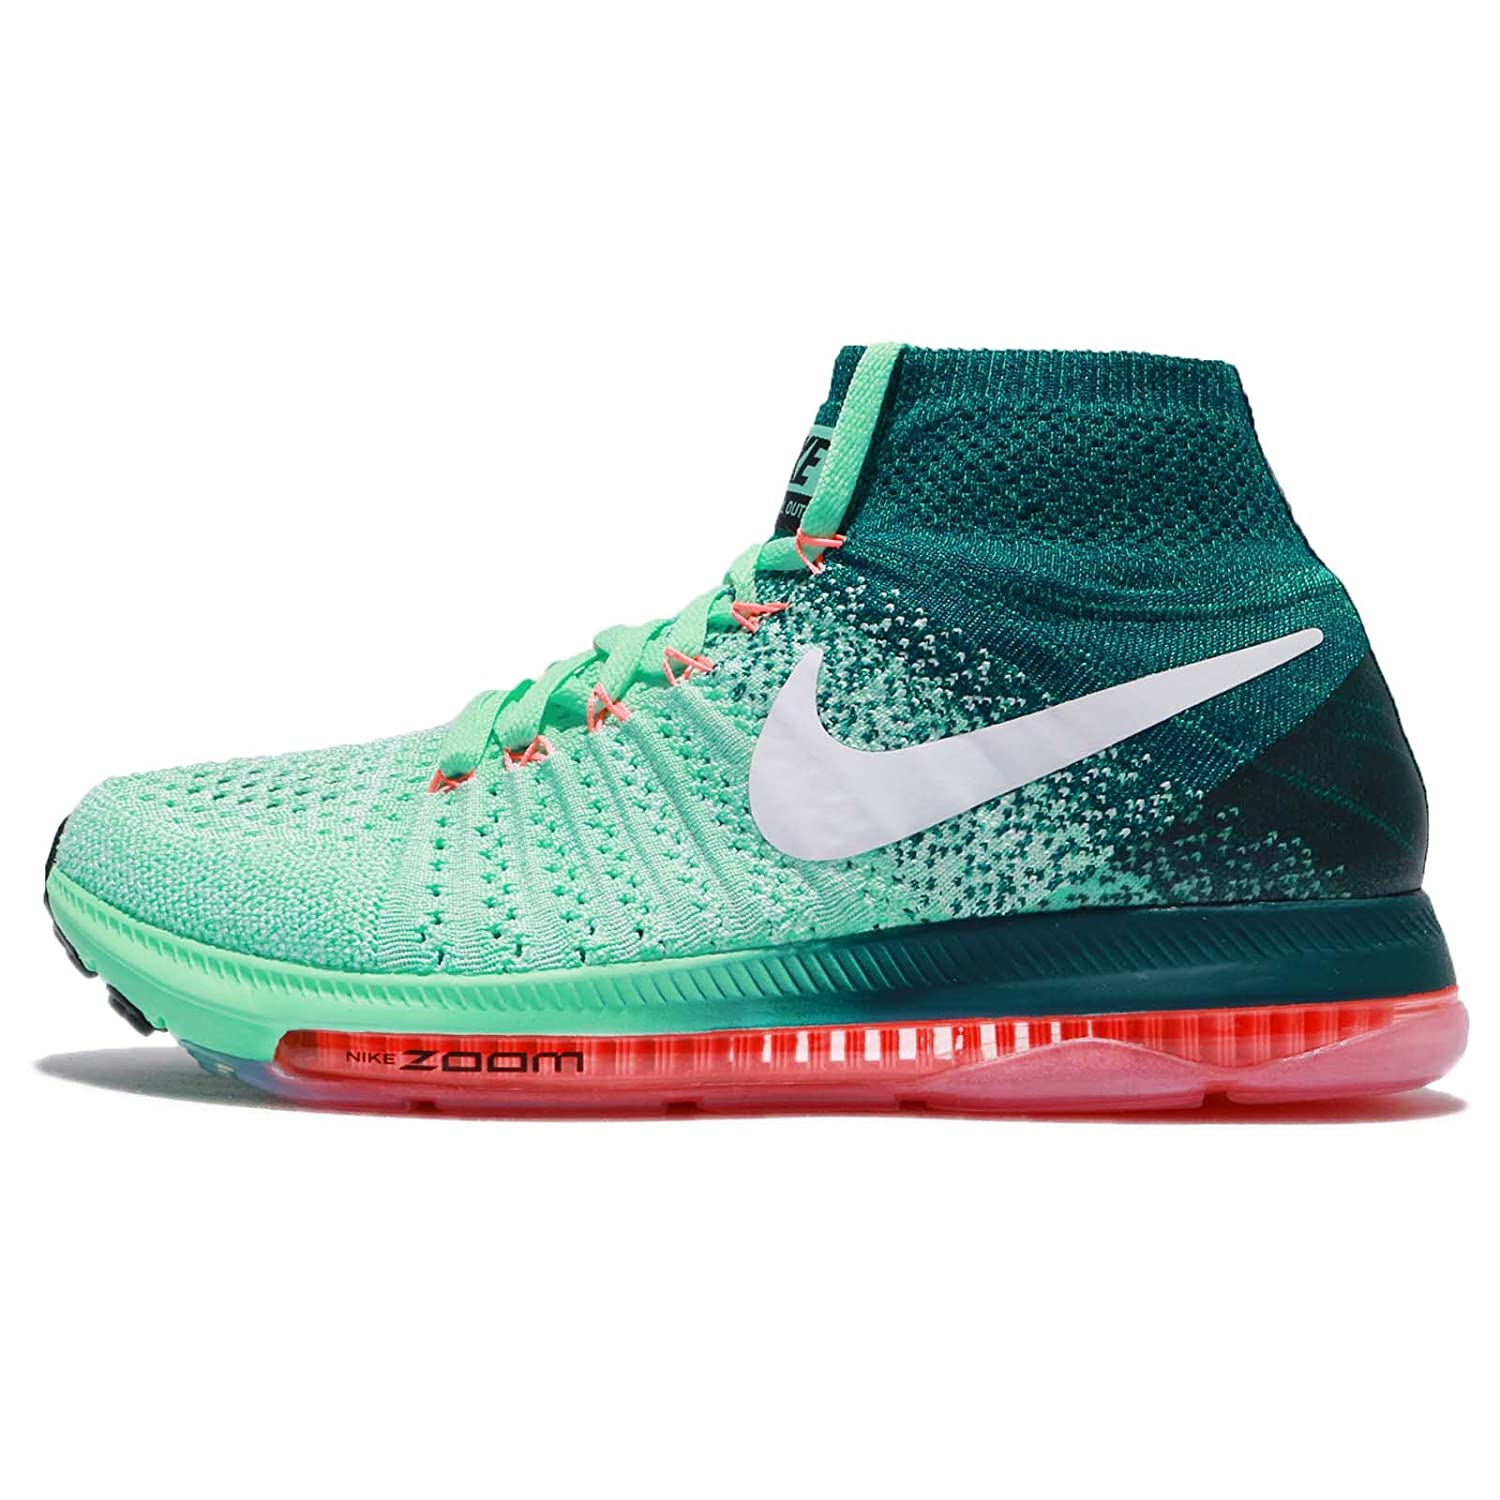 Nike Women's Zoom All Out Flyknit Running Shoes B01M3PNDN4 7 B(M) US|Green Glow/White-midnight Turq